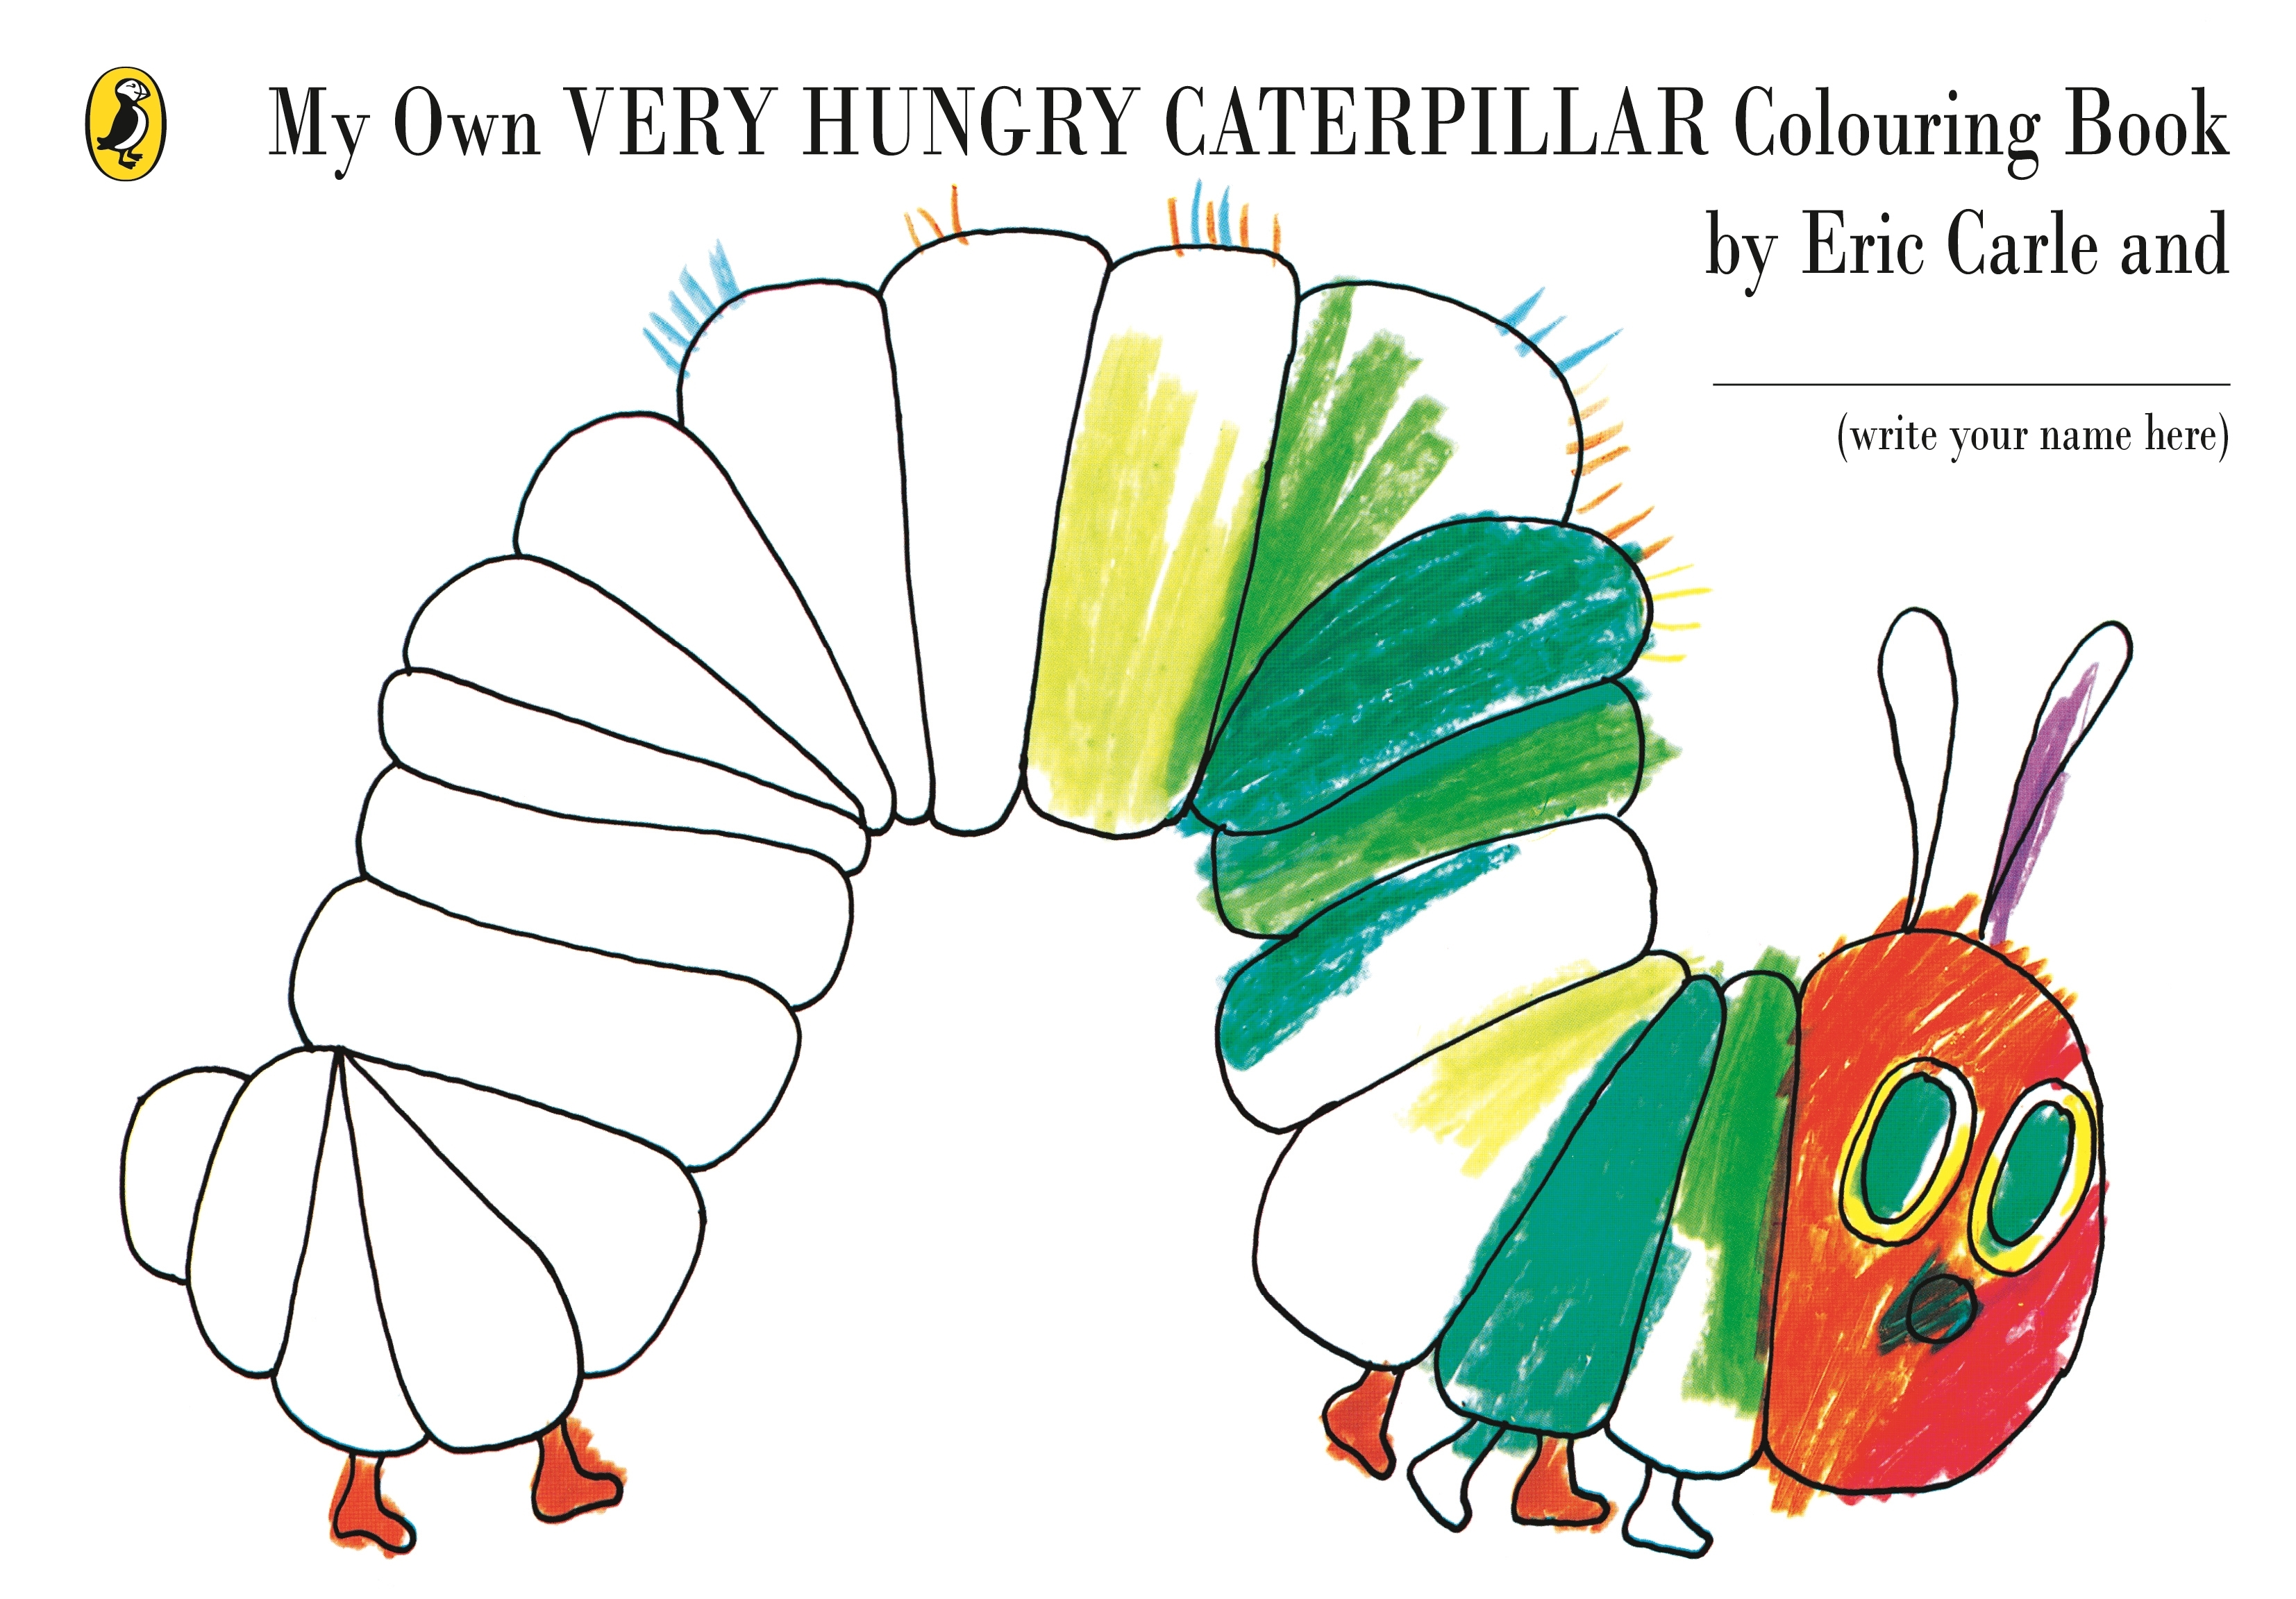 My Own Very Hungry Caterpillar Colouring Book by Eric Carle ...